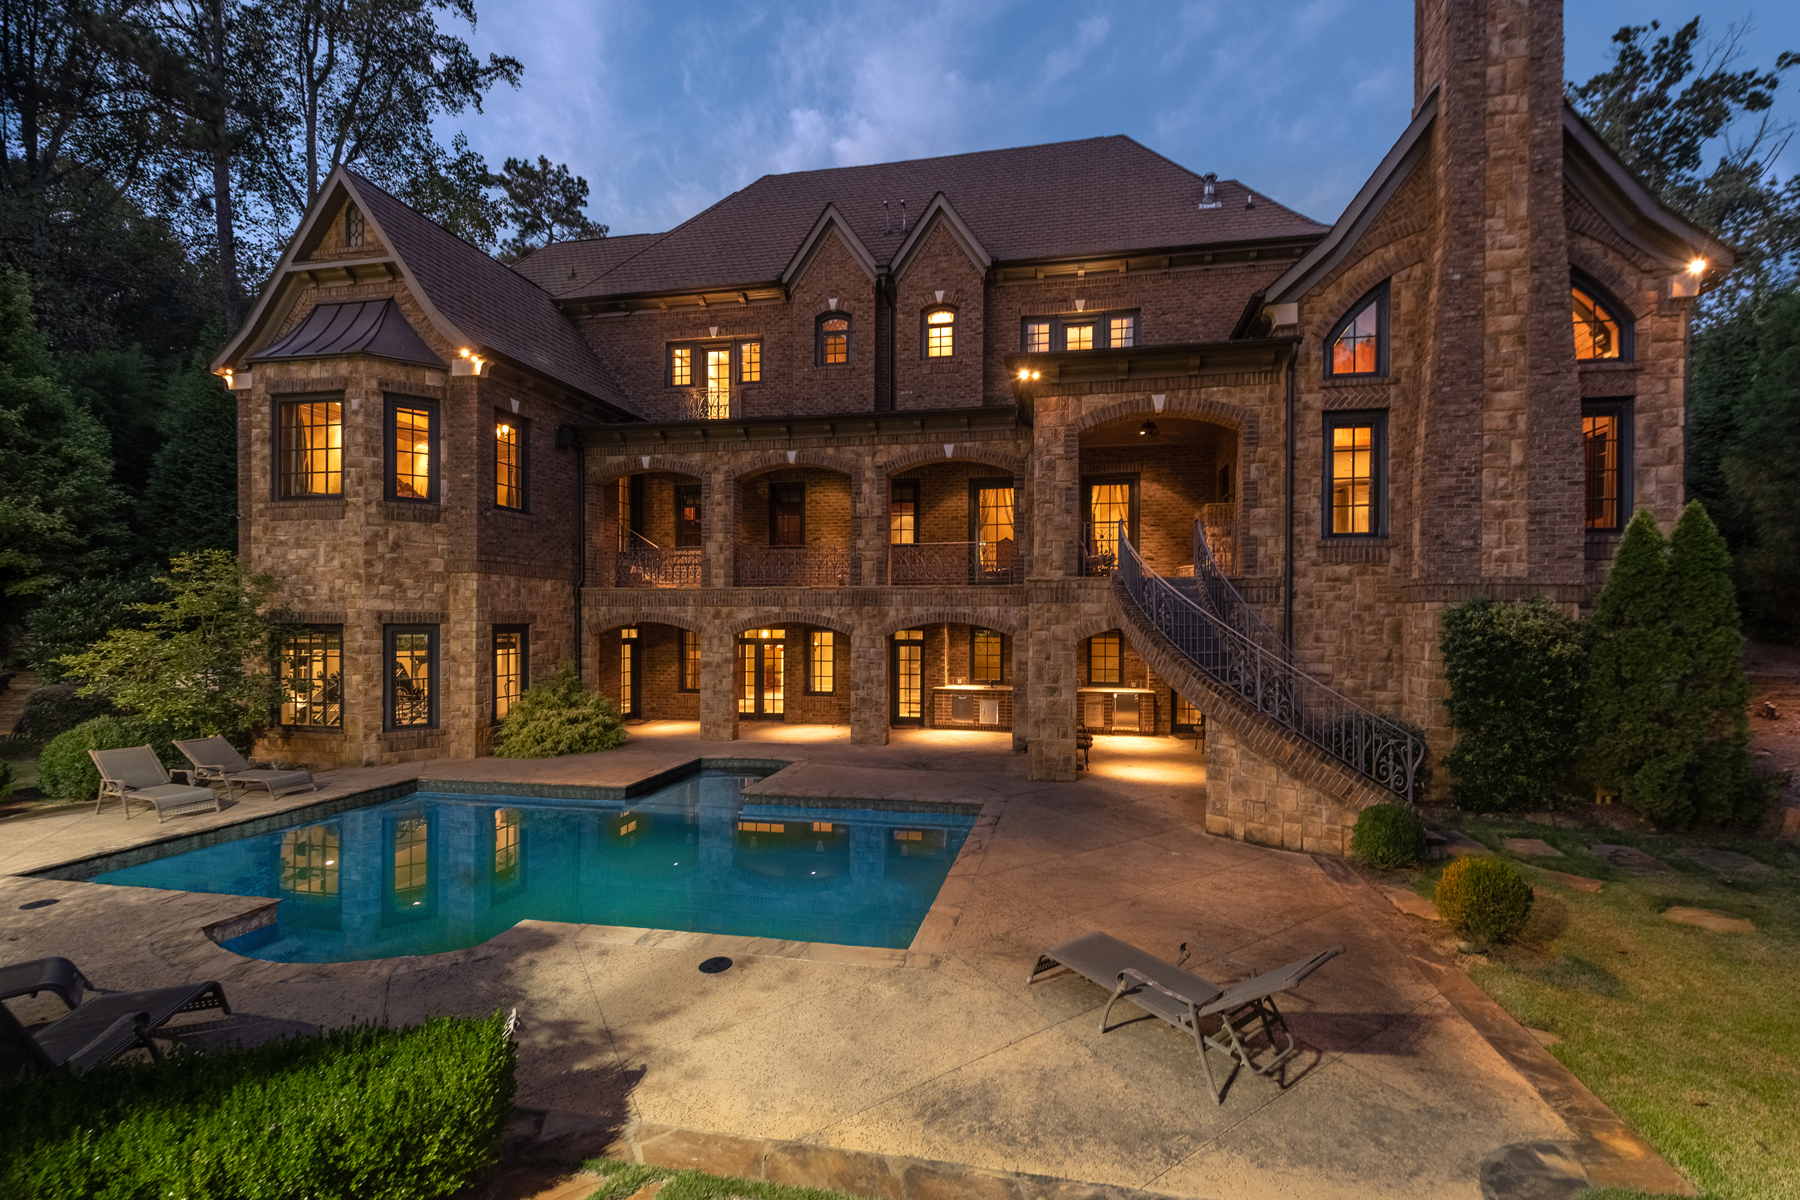 Single Family Home for Sale at Custom Gated Stone Estate With Lighted Tennis Court And Heated Pool 4934 Powers Ferry Road Atlanta, Georgia 30327 United States